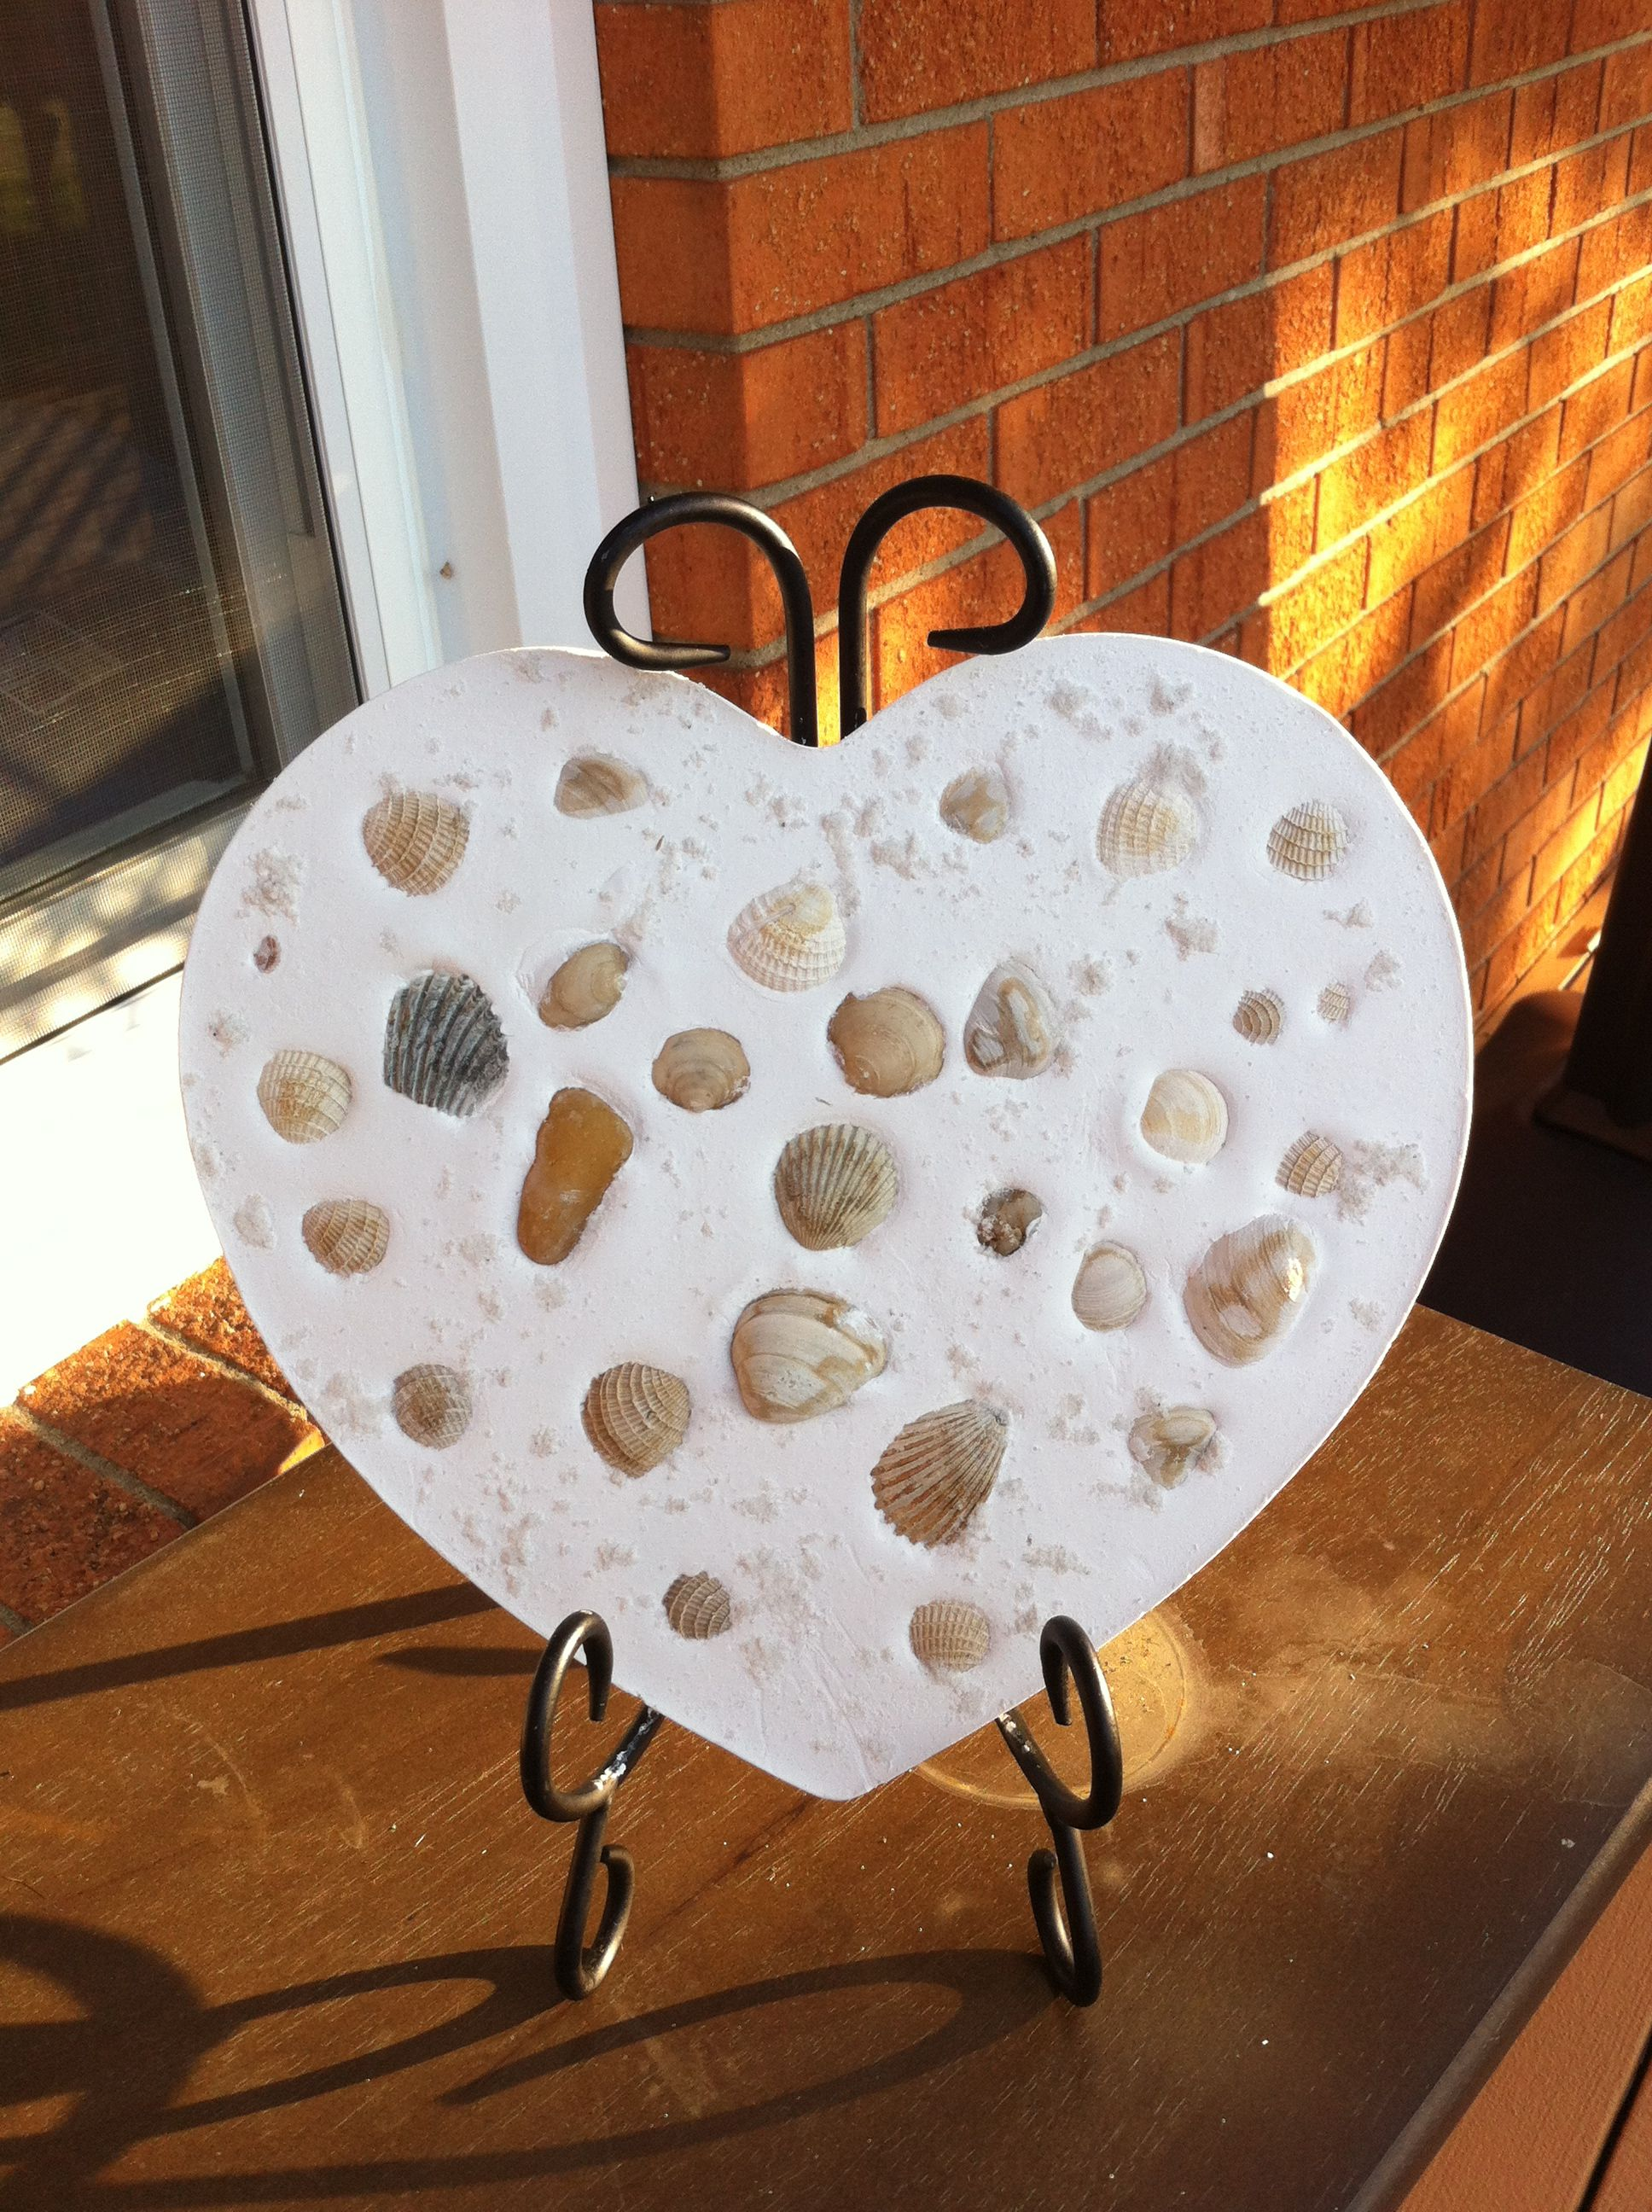 Plaster of Paris and heart mold from Walmart. Me and my daughter made this stepping stone and placed shells and white sand from our beach vacation in the plaster while still wet. Let dry for 24 hrs, and now have a neat way to show off our sand treasures :)